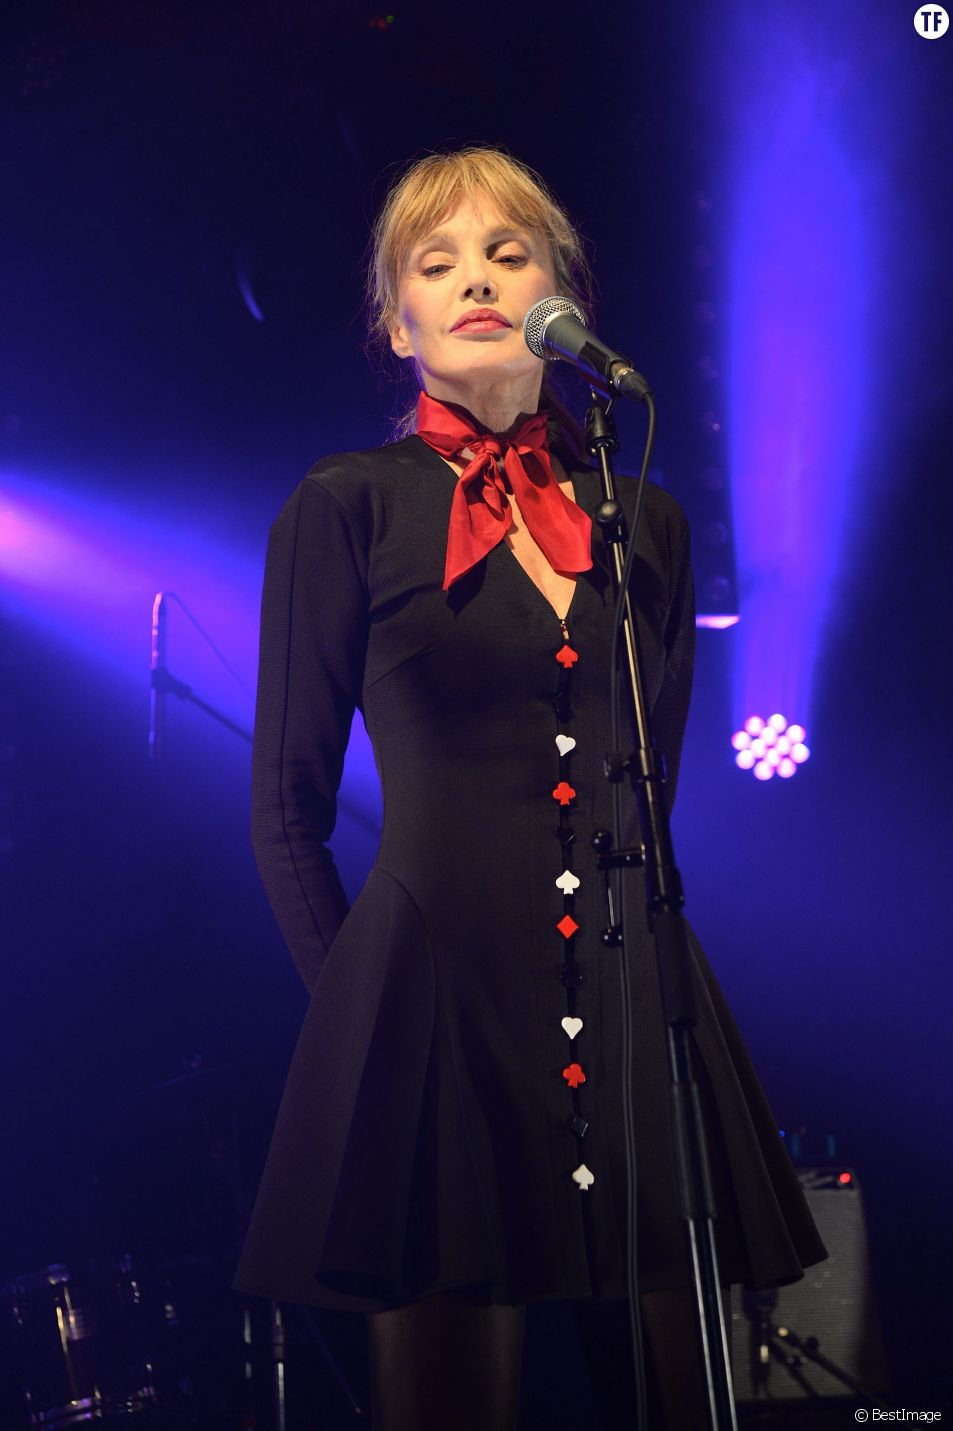 Arielle Dombasle - Showcase privé de Arielle Dombasle & The Hillbilly Moon Explosion au Bus Palladium à Paris. Le 24 septembre 2015